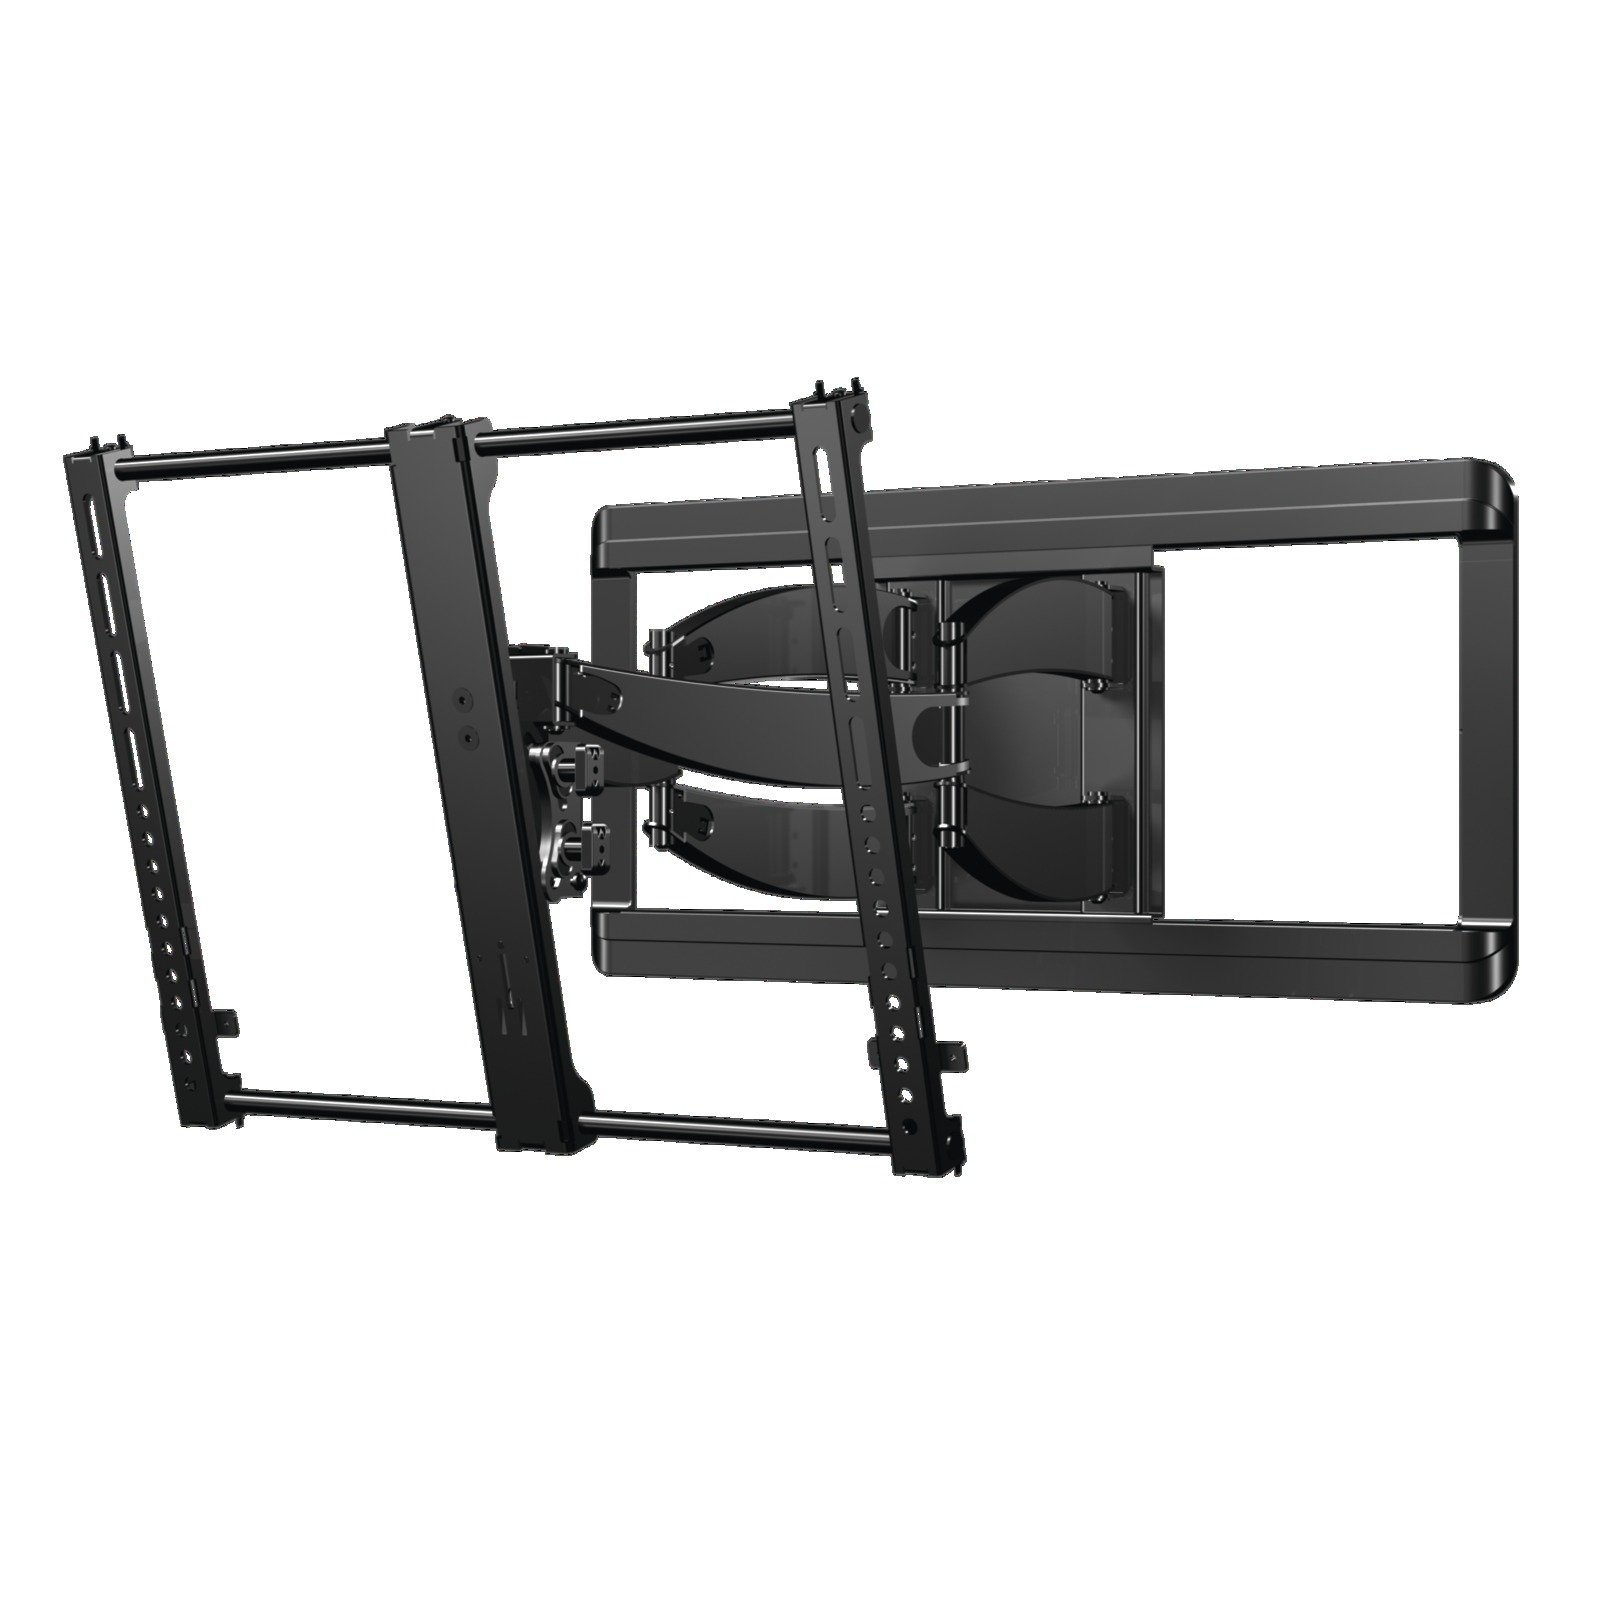 "Sanus Premium Full Motion TV Wall Mount for 42""-90"" TVs Up to 150 lbs. - VLF628-B1"